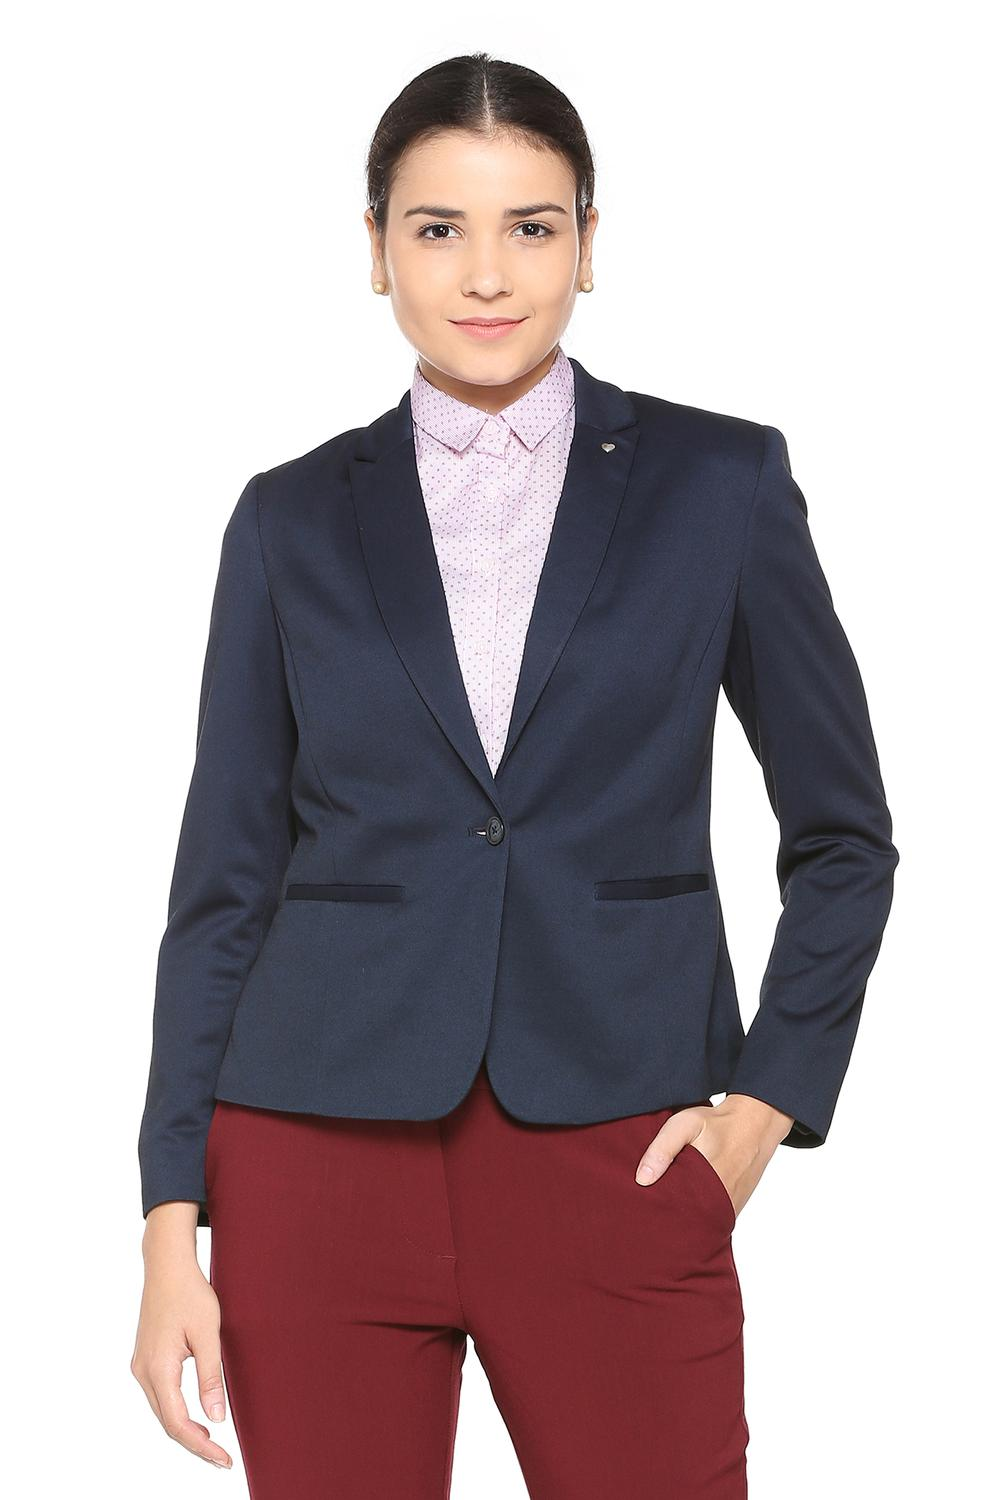 9b65a621f7d69 Solly Suits & Blazers, Allen Solly Blue Blazer for Women at Allensolly.com